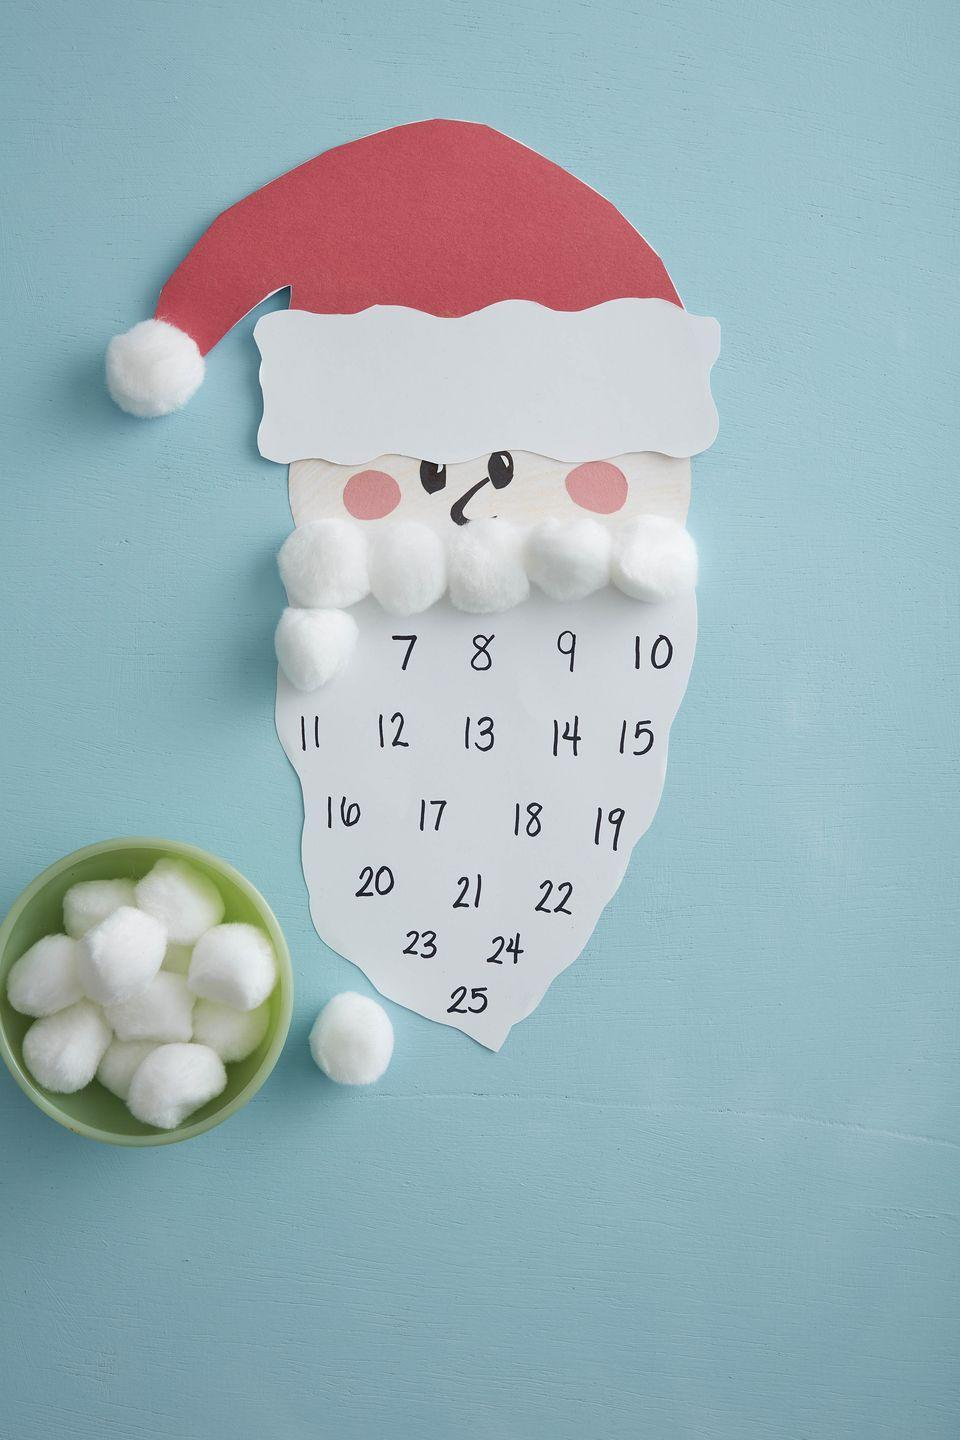 "<p>The kids will love helping Santa's beard grow with fluffy cotton balls. By the 25th he will have the full monty! <br></p><p><strong>To make:</strong> Cut Santa's face from white craft paper. Add texture with colored pencil. Cut pink cheeks, eyes, and nose from construction paper; glue to the face. Cut the hat from red and white craft paper; glue to the face. Glue a large cotton ball at the point of the hat. Cut a long beard shape from white craft paper. Write the dates of the month leading up to Christmas on the beard. Hang the calendar and set a bowl of cotton balls and a bottle of glue nearby.</p><p><a class=""link rapid-noclick-resp"" href=""https://www.amazon.com/Crayola-Colored-Pre-sharpened-Coloring-Stocking/dp/B018HB2QFU/ref=sr_1_2_sspa?tag=syn-yahoo-20&ascsubtag=%5Bartid%7C10050.g.5030%5Bsrc%7Cyahoo-us"" rel=""nofollow noopener"" target=""_blank"" data-ylk=""slk:SHOP COLORED PENCILS"">SHOP COLORED PENCILS</a></p>"